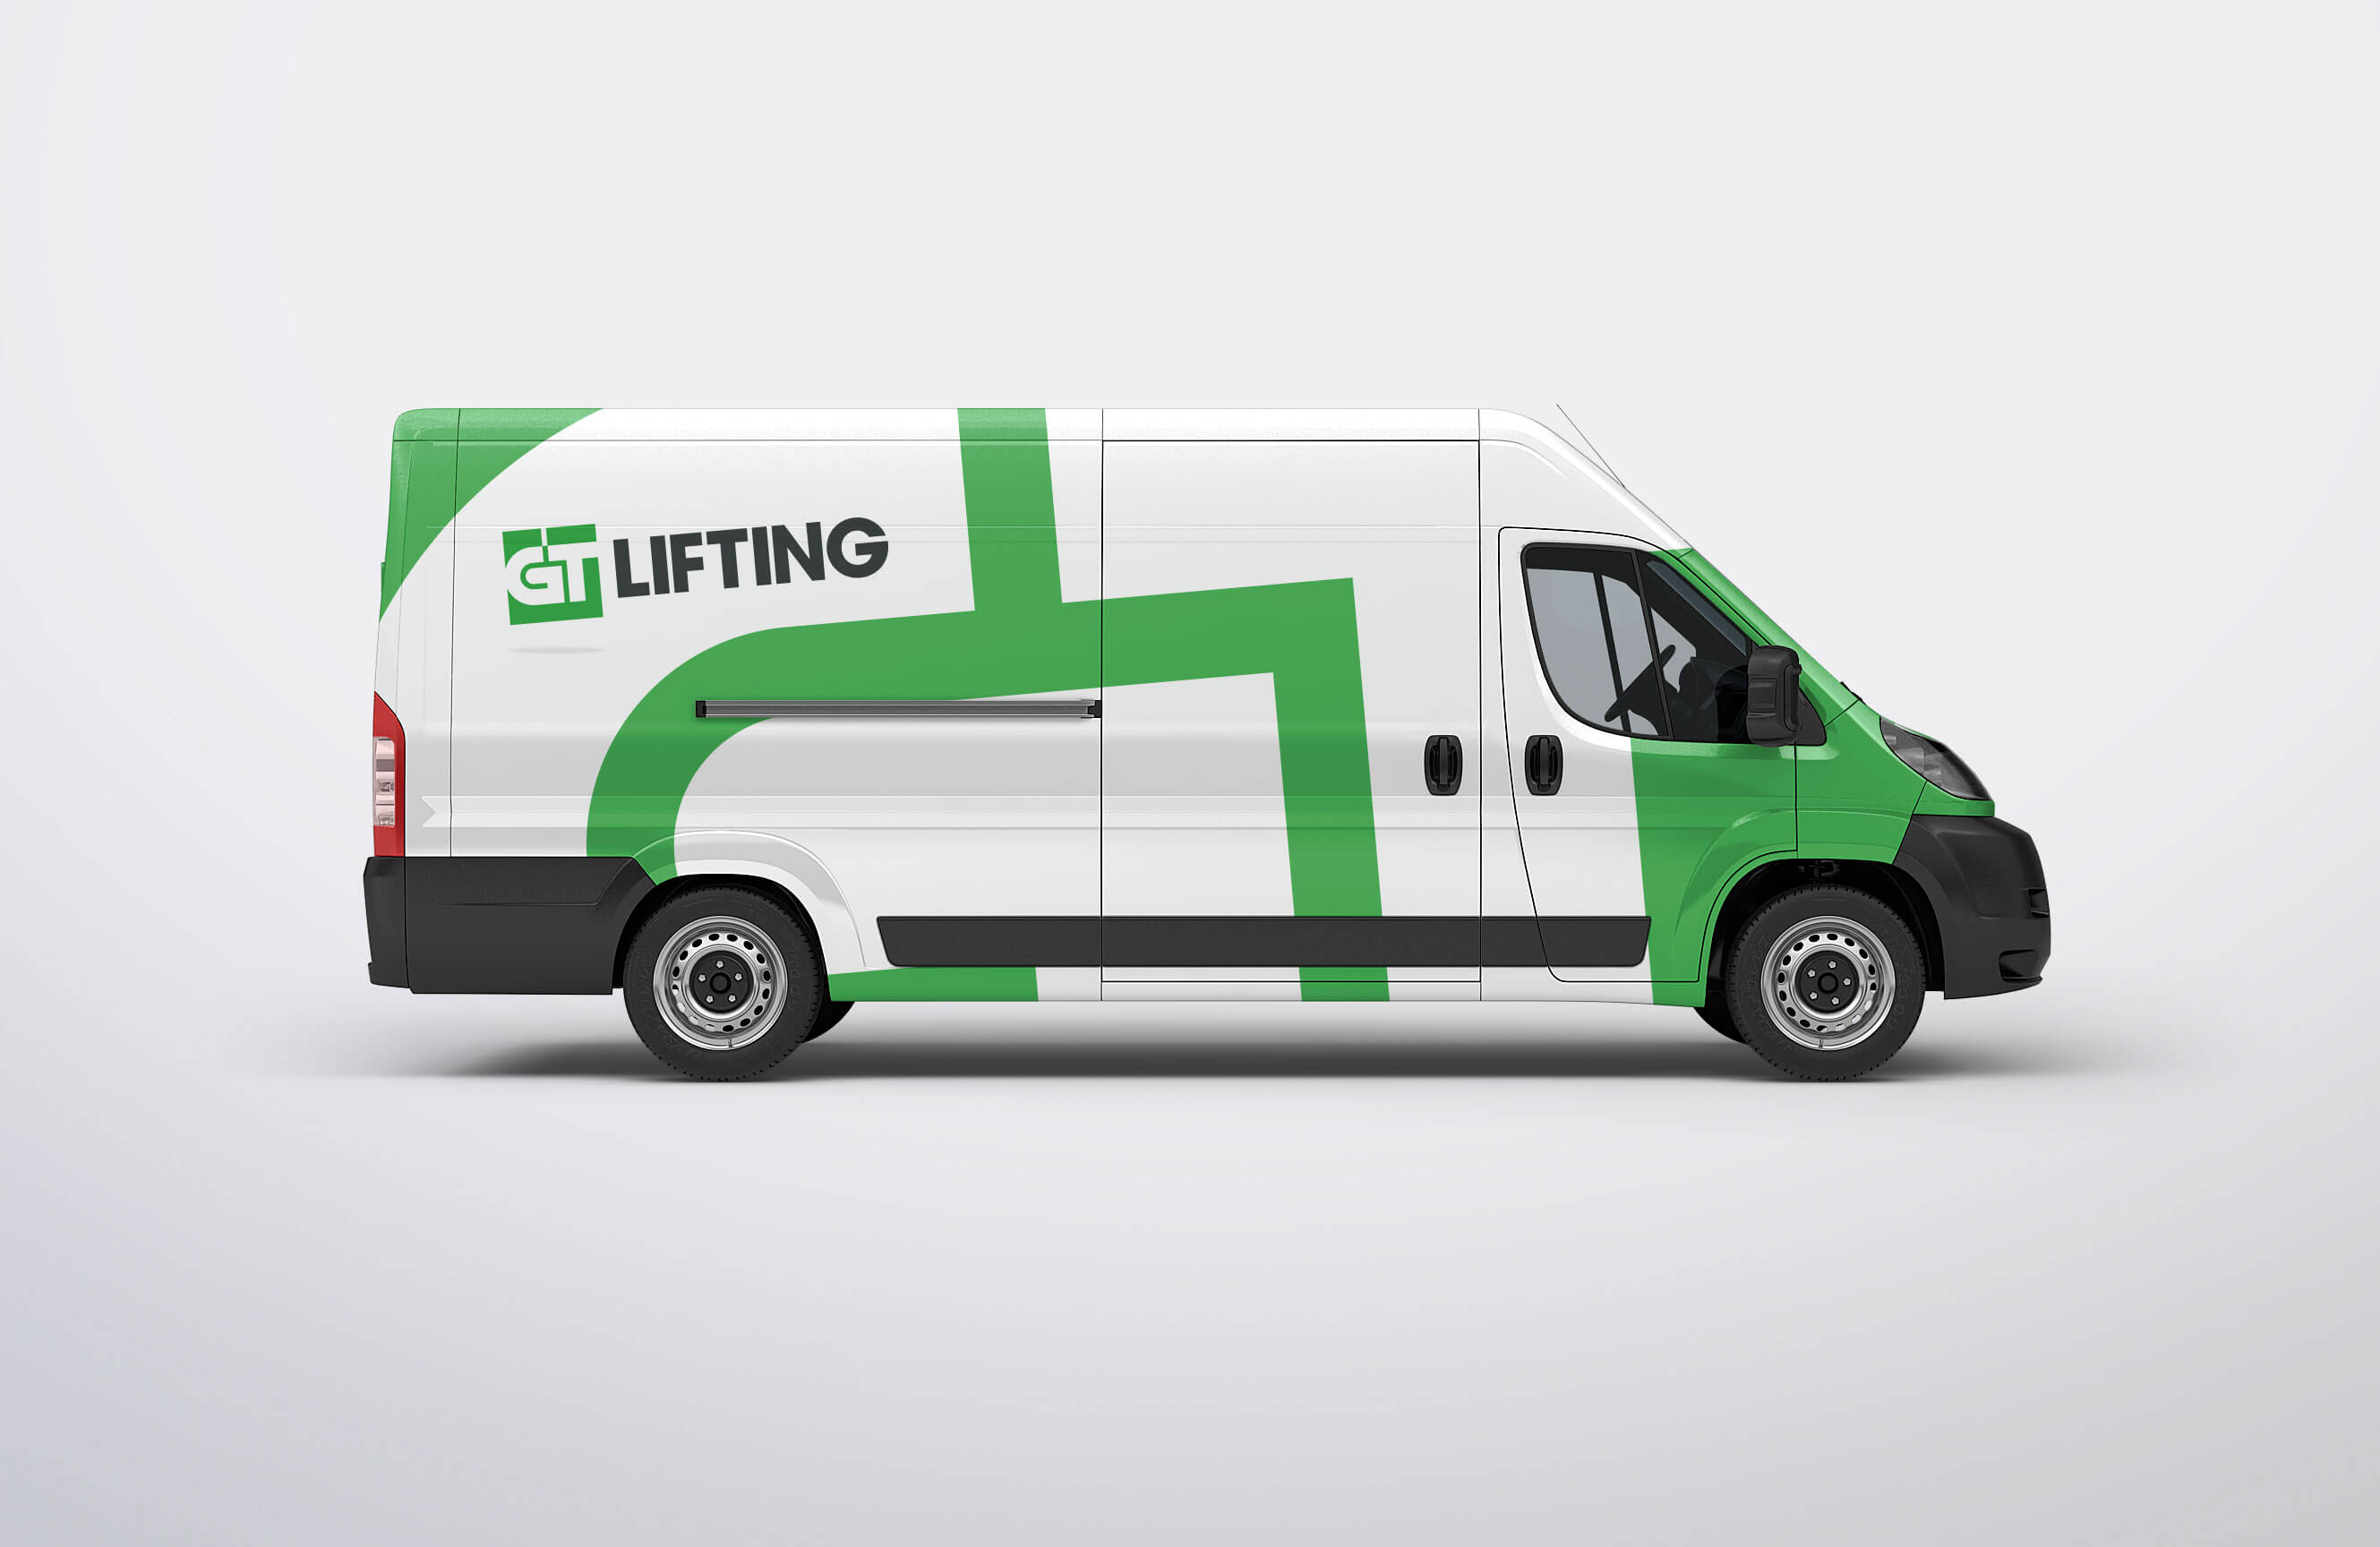 GT Lifting Van Sign Writing Design Concept